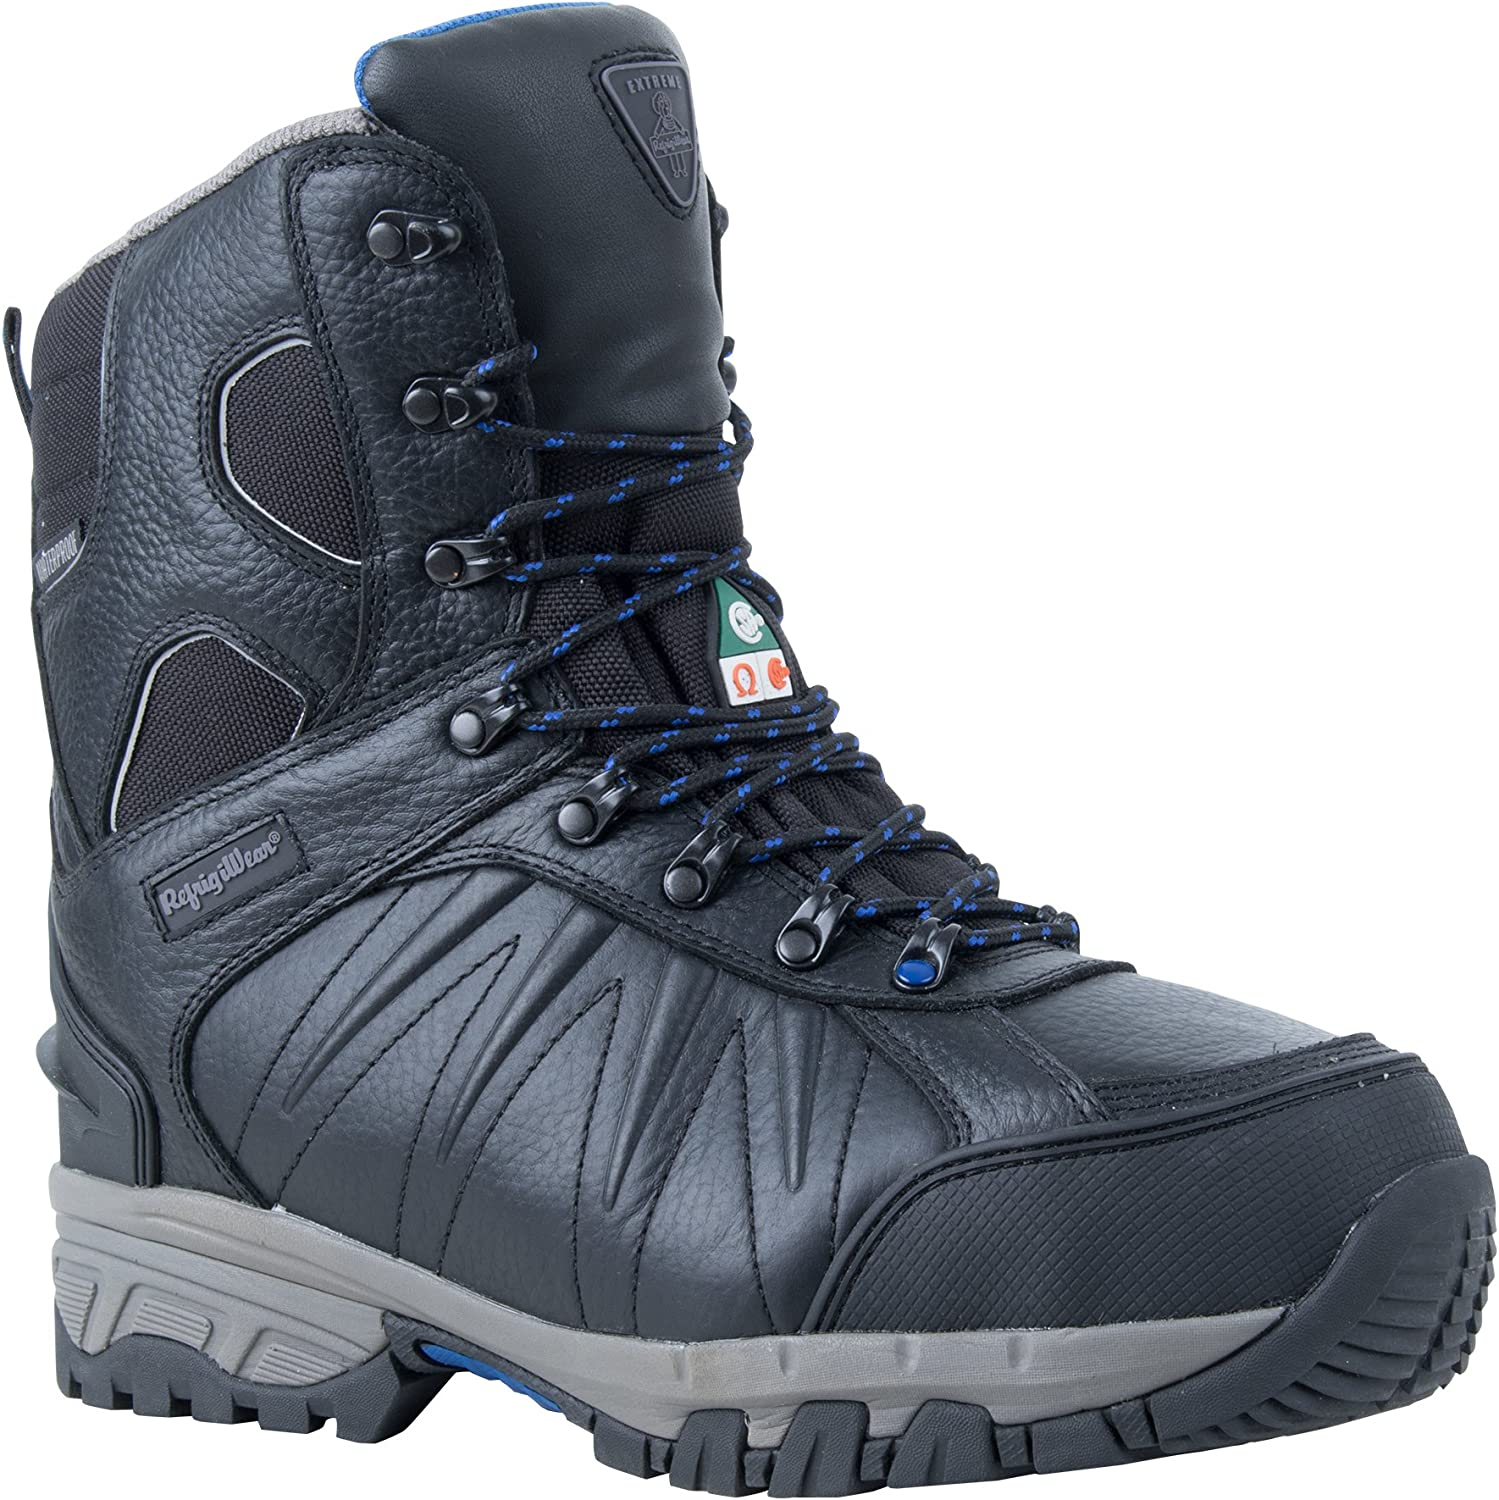 RefrigiWear Men's Extreme Insulated Waterproof 8-Inch Leather Freezer Work Boots